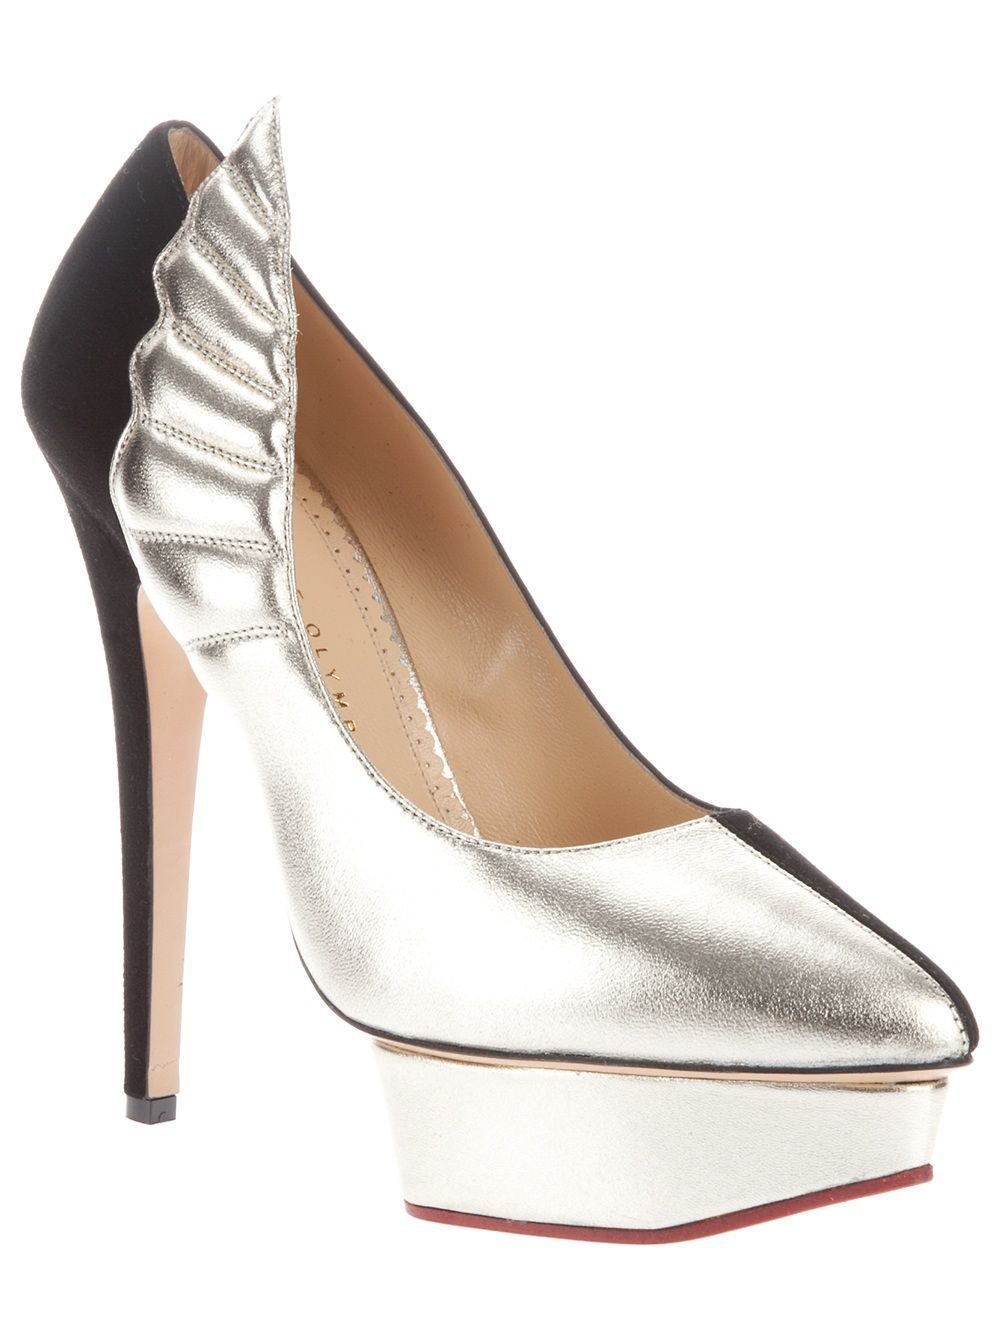 9e9ec973a CHARLOTTE OLYMPIA wing detail pump, farfetch from Dolci Trame Siena, Italy.